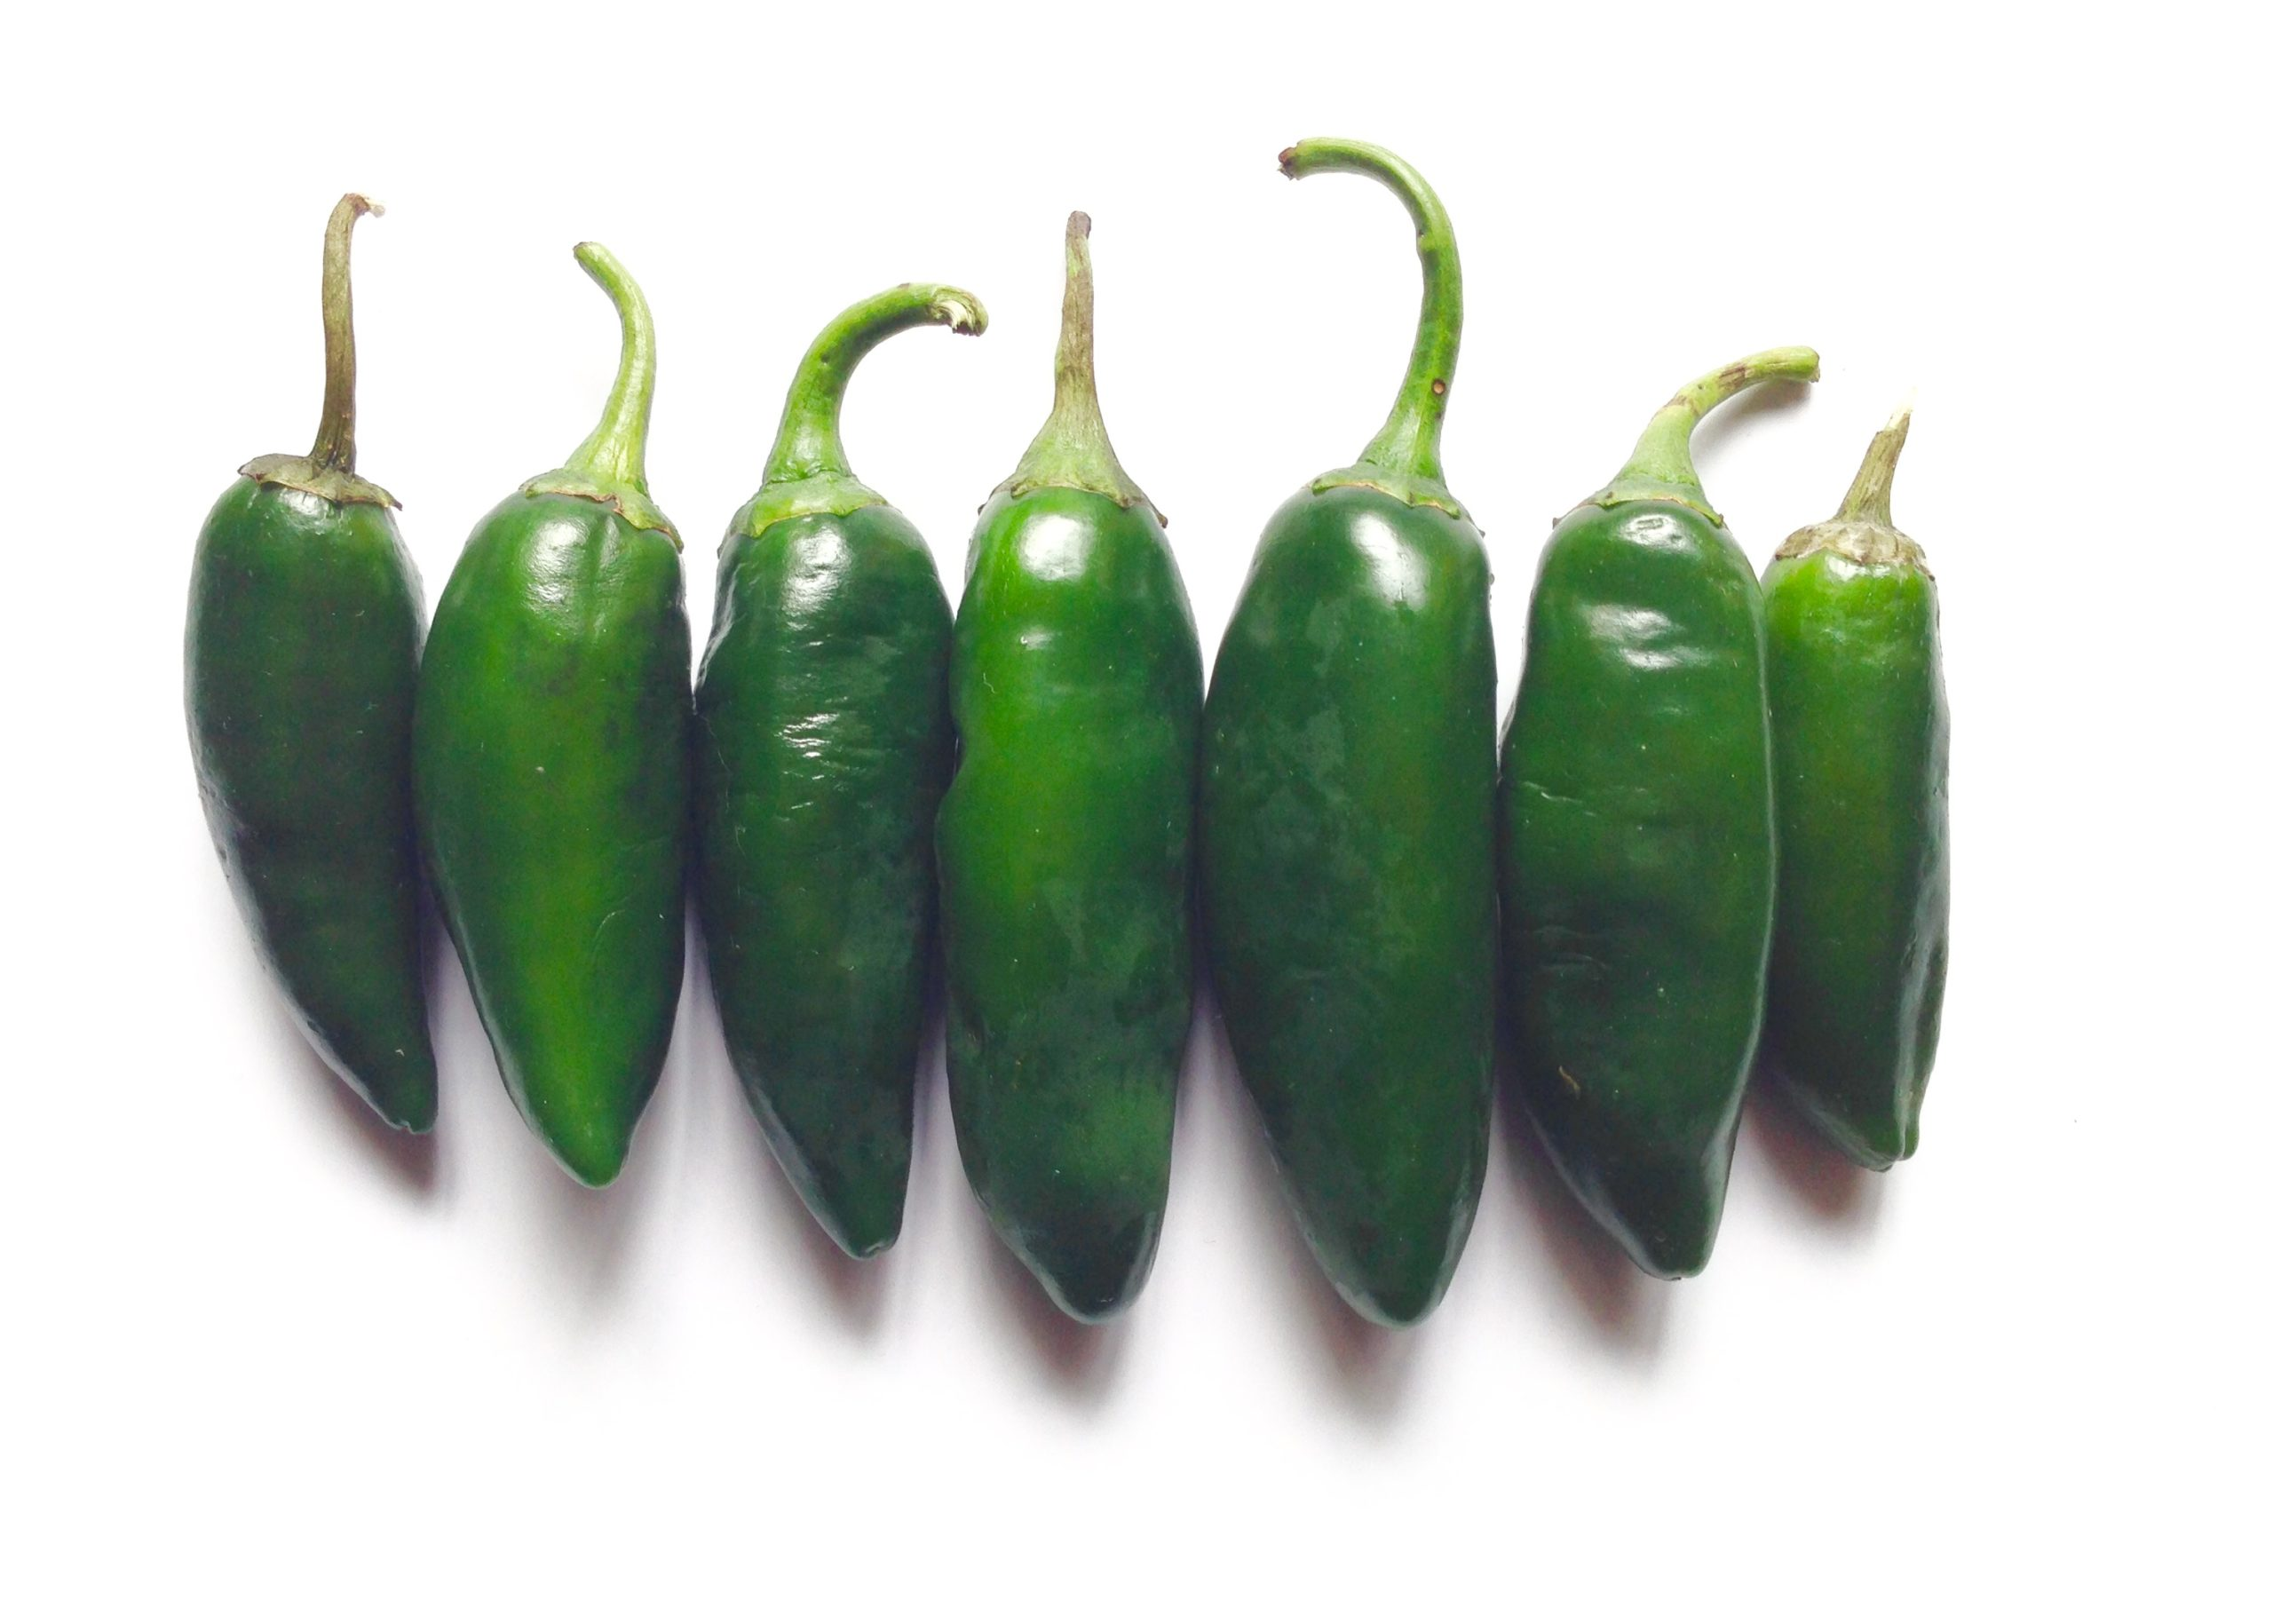 Photo: Jalapeno peppers.